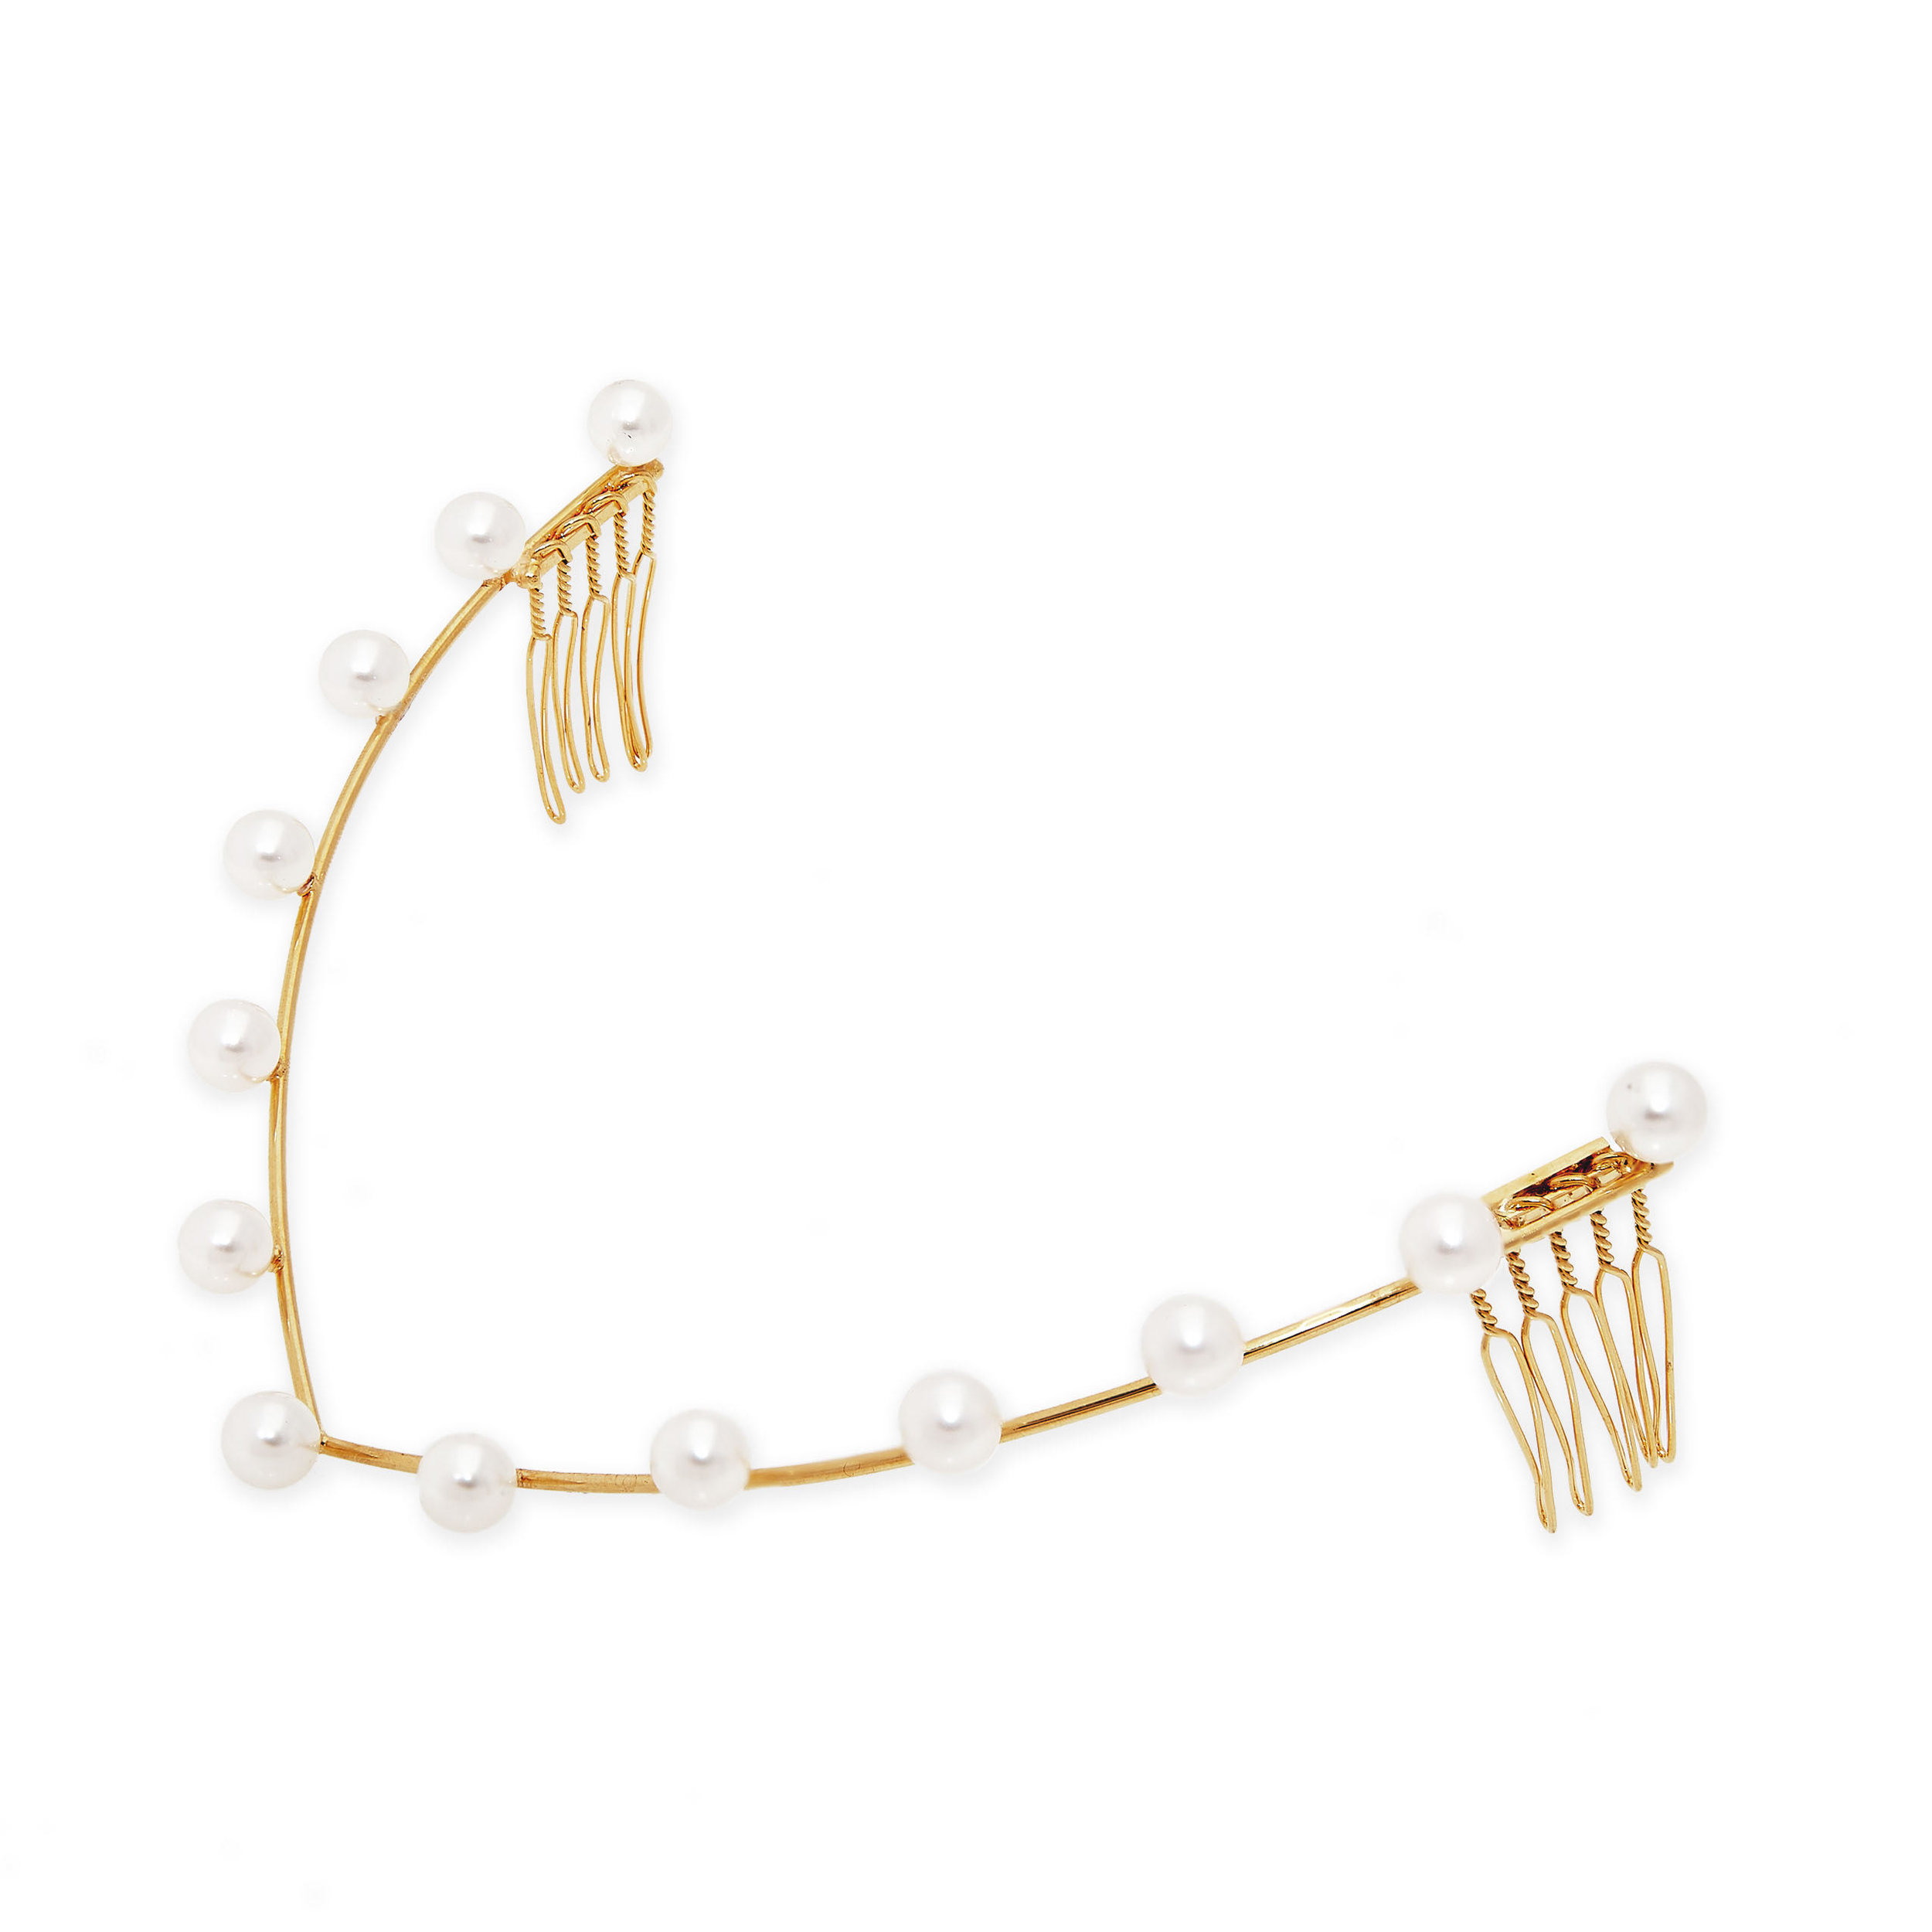 LELET NY Gold-plated Swarovski pearl headband, AVAILABLE AT NET-A-PORTER